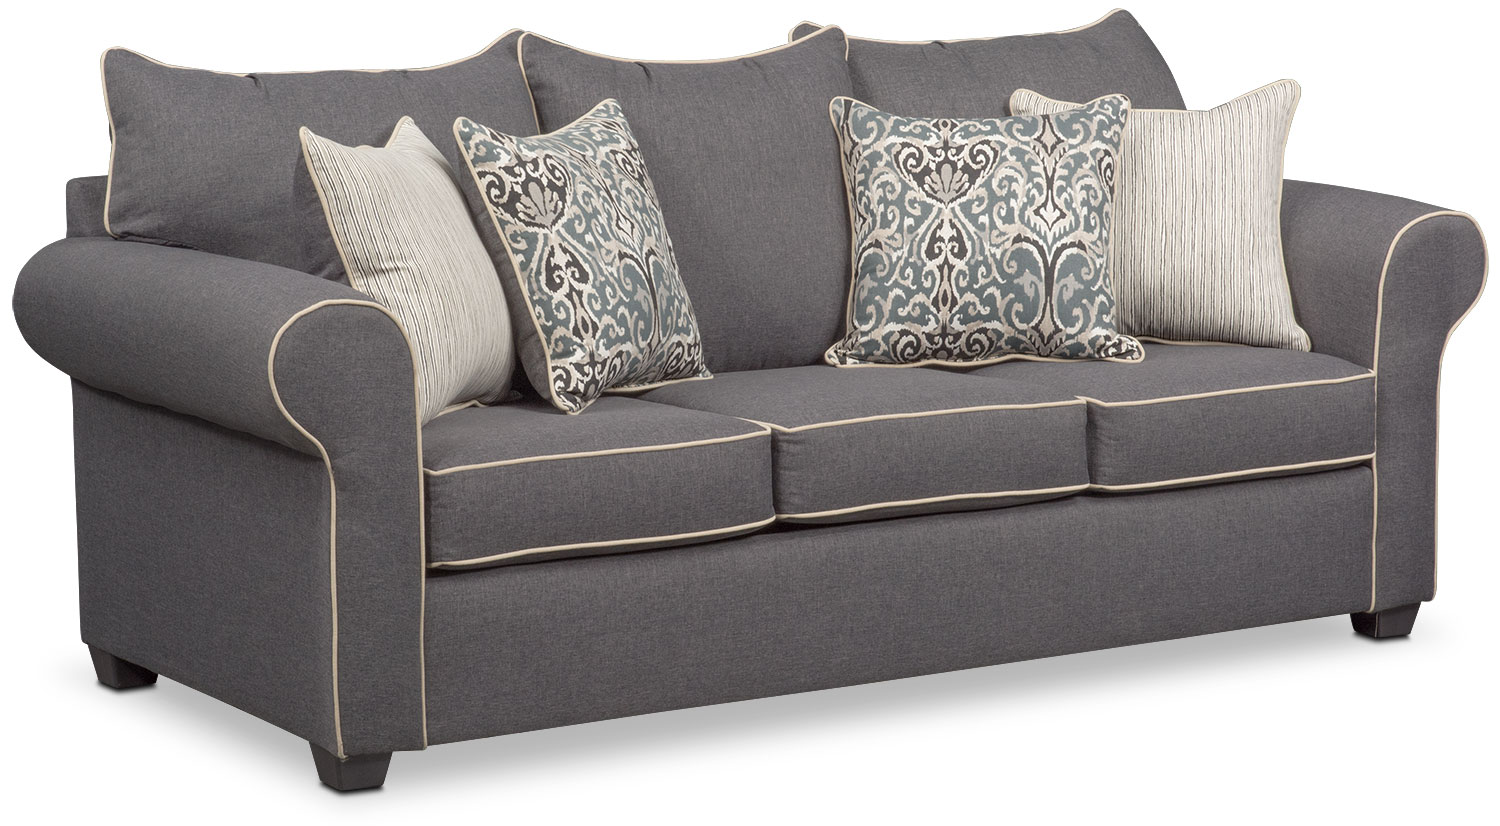 queen sleeper sofa memory foam mattress and couch cleaning carla value city furniture mattresses living room